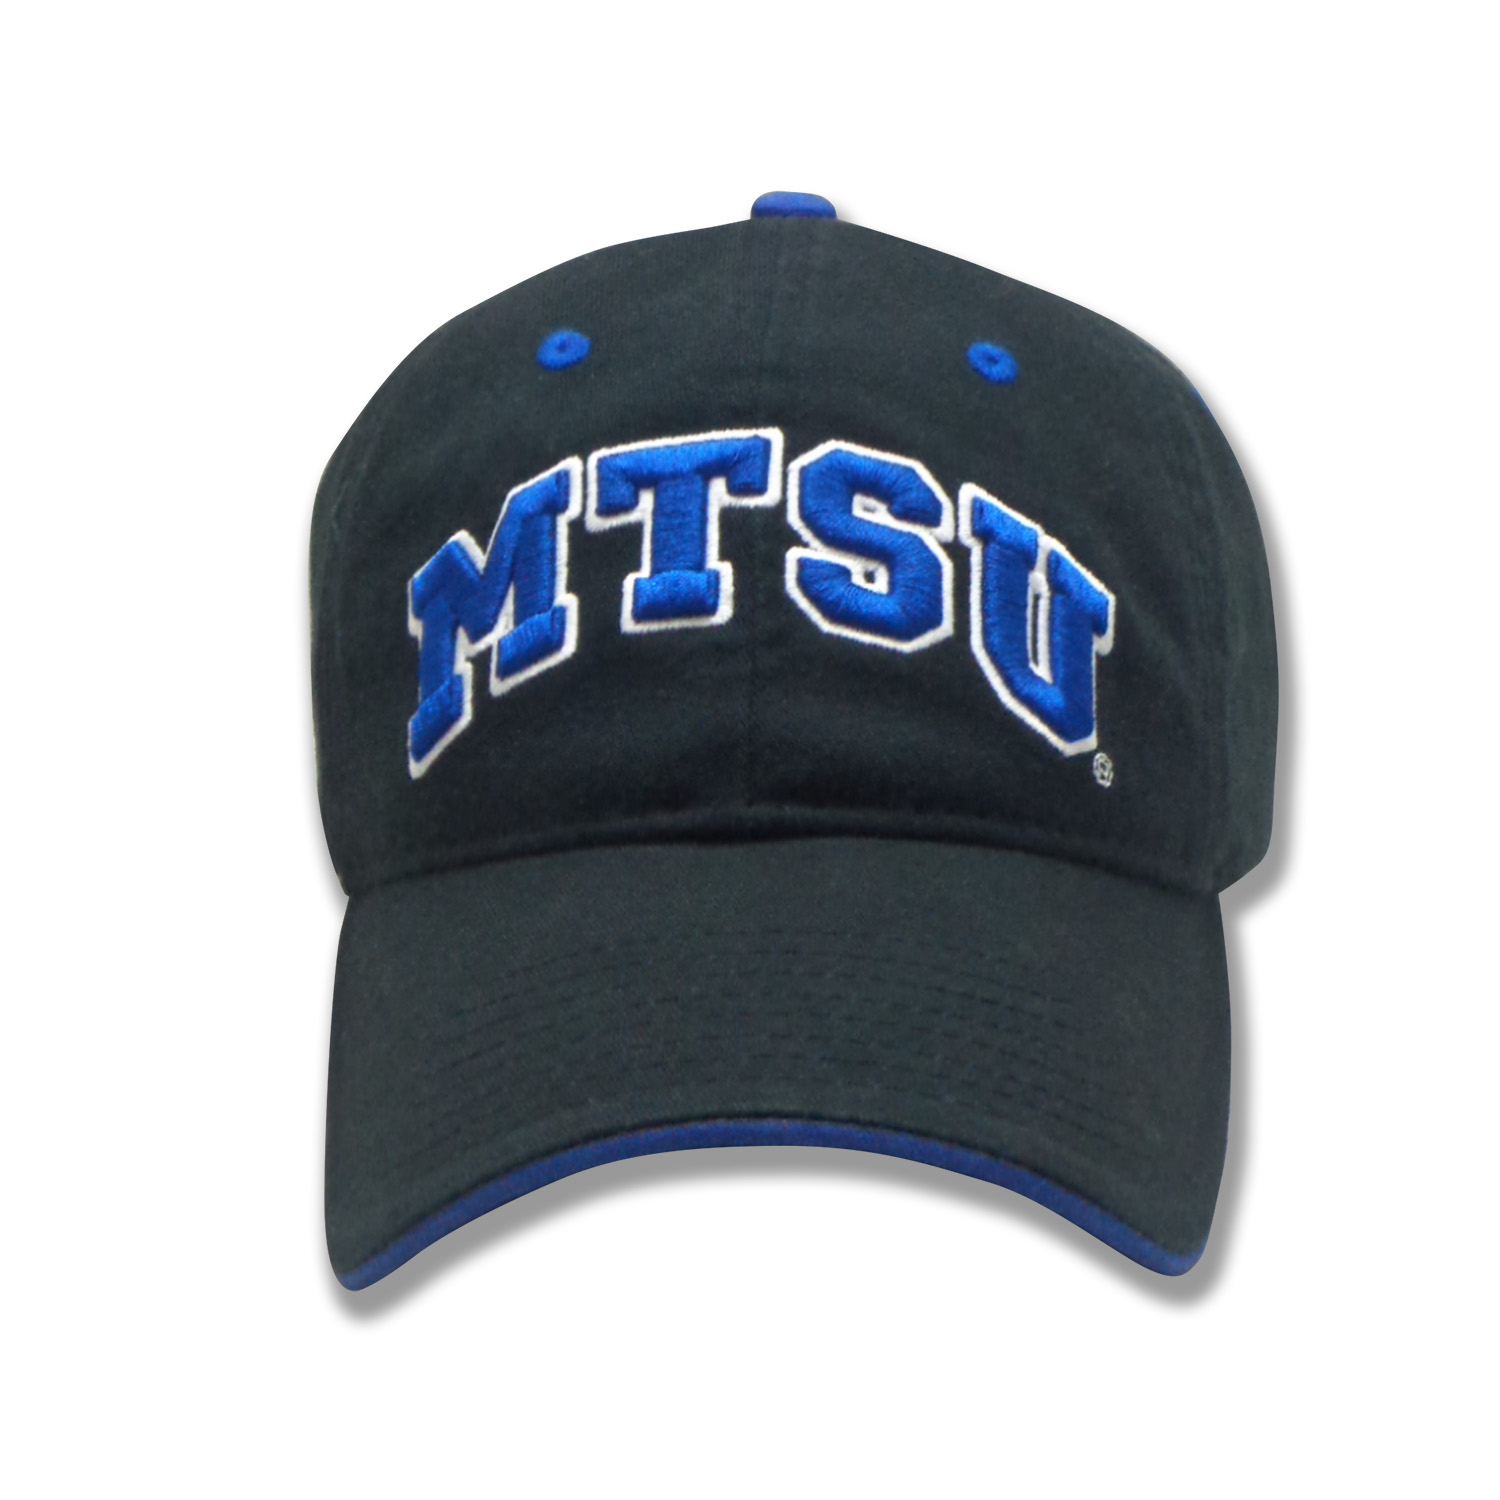 MTSU Arch Relaxed Twill Hat